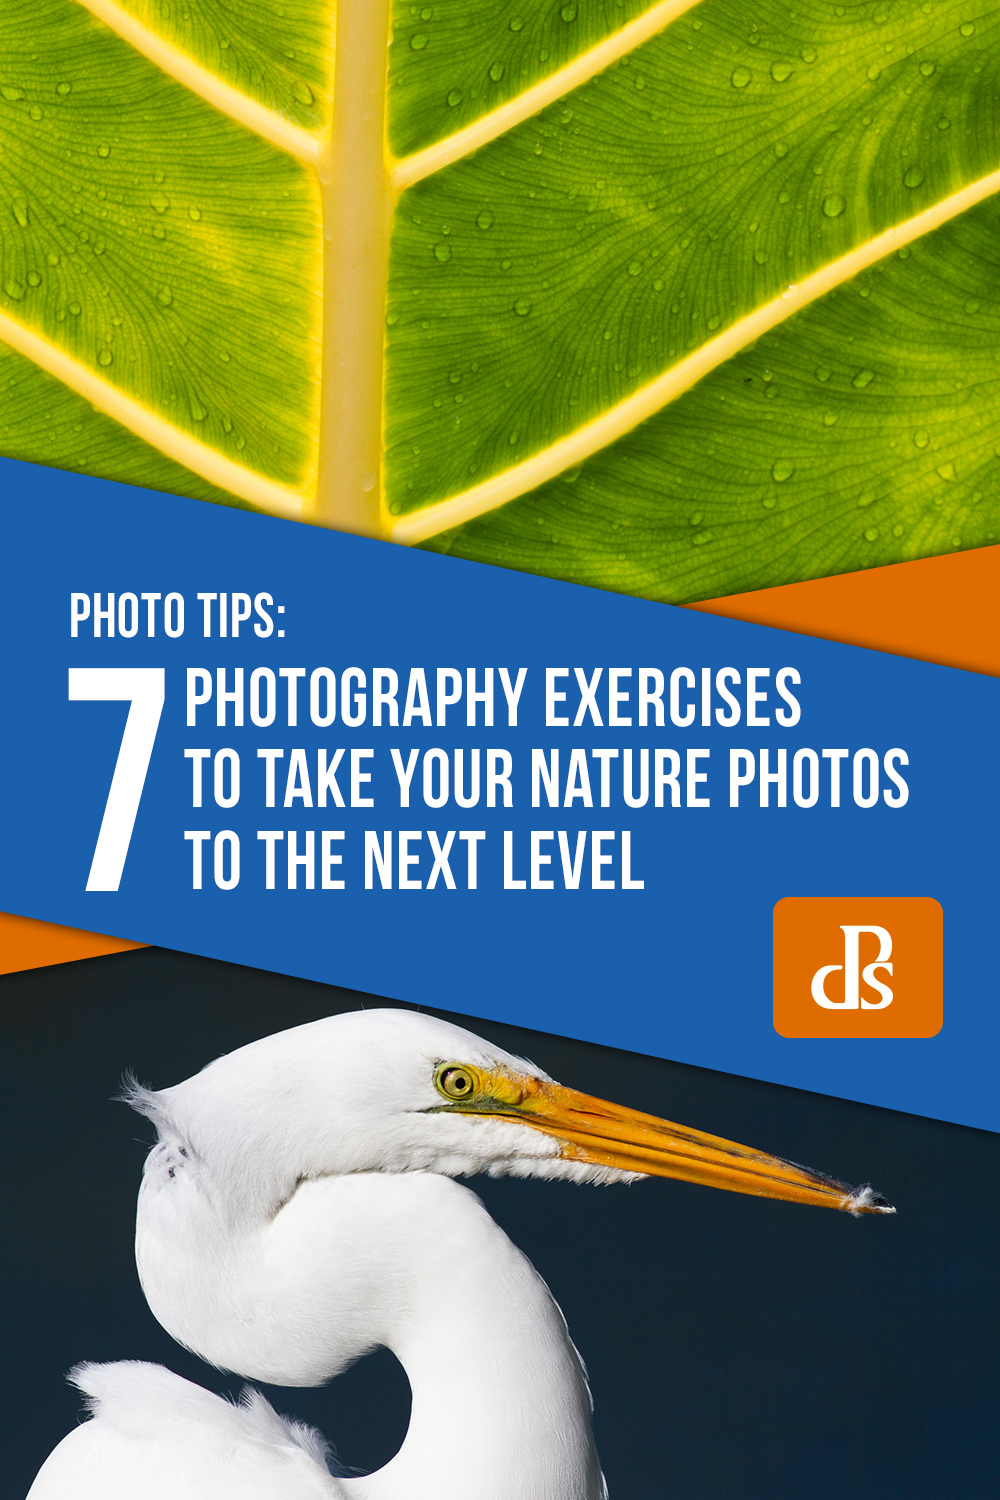 7 Photography Exercises to Take Your Nature Photos to the Next Level